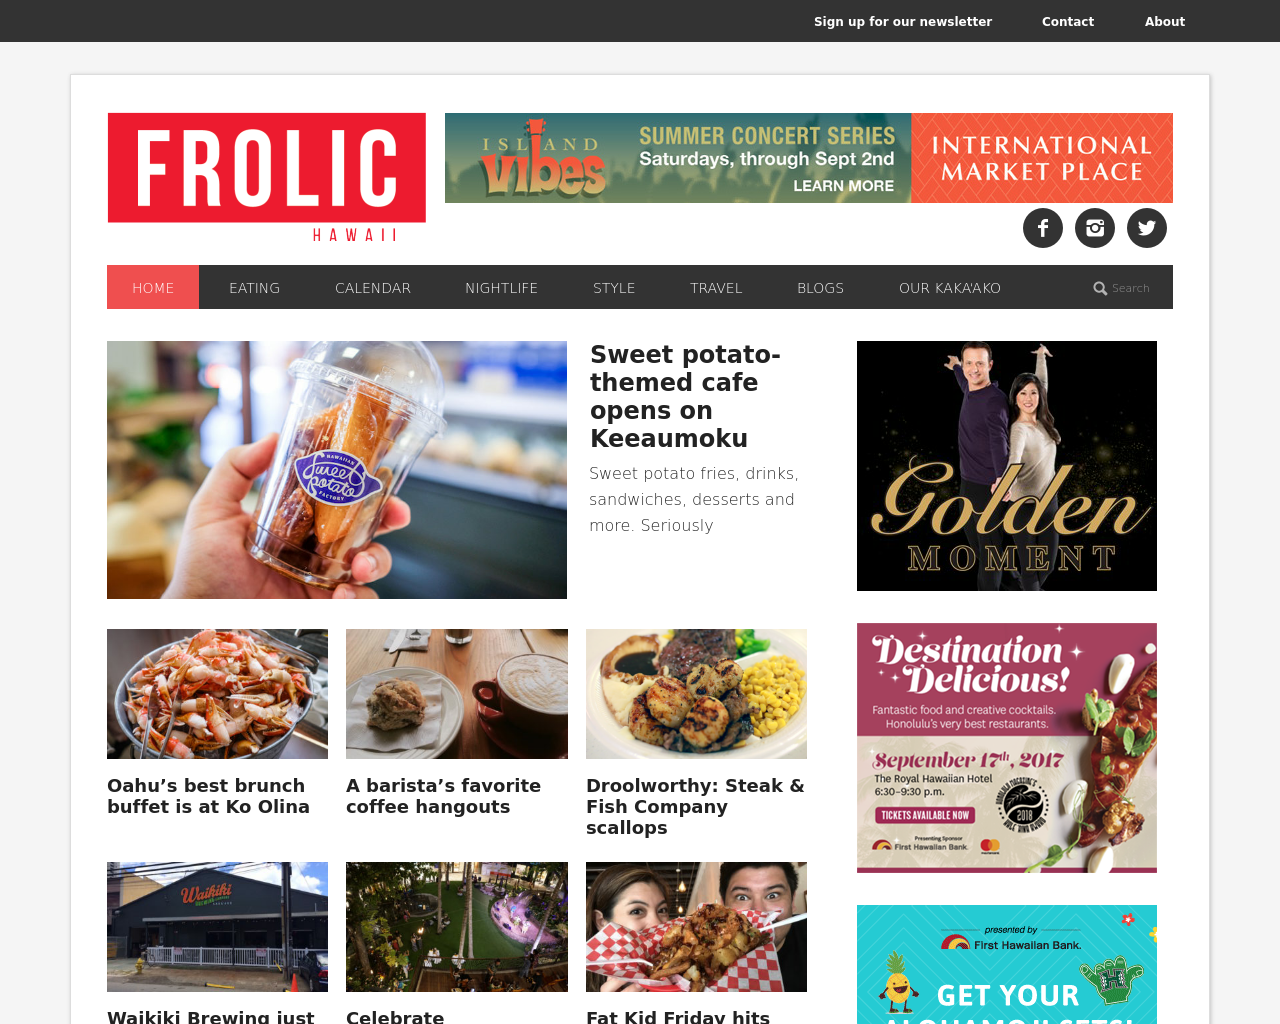 Frolic-Hawaii-Advertising-Reviews-Pricing